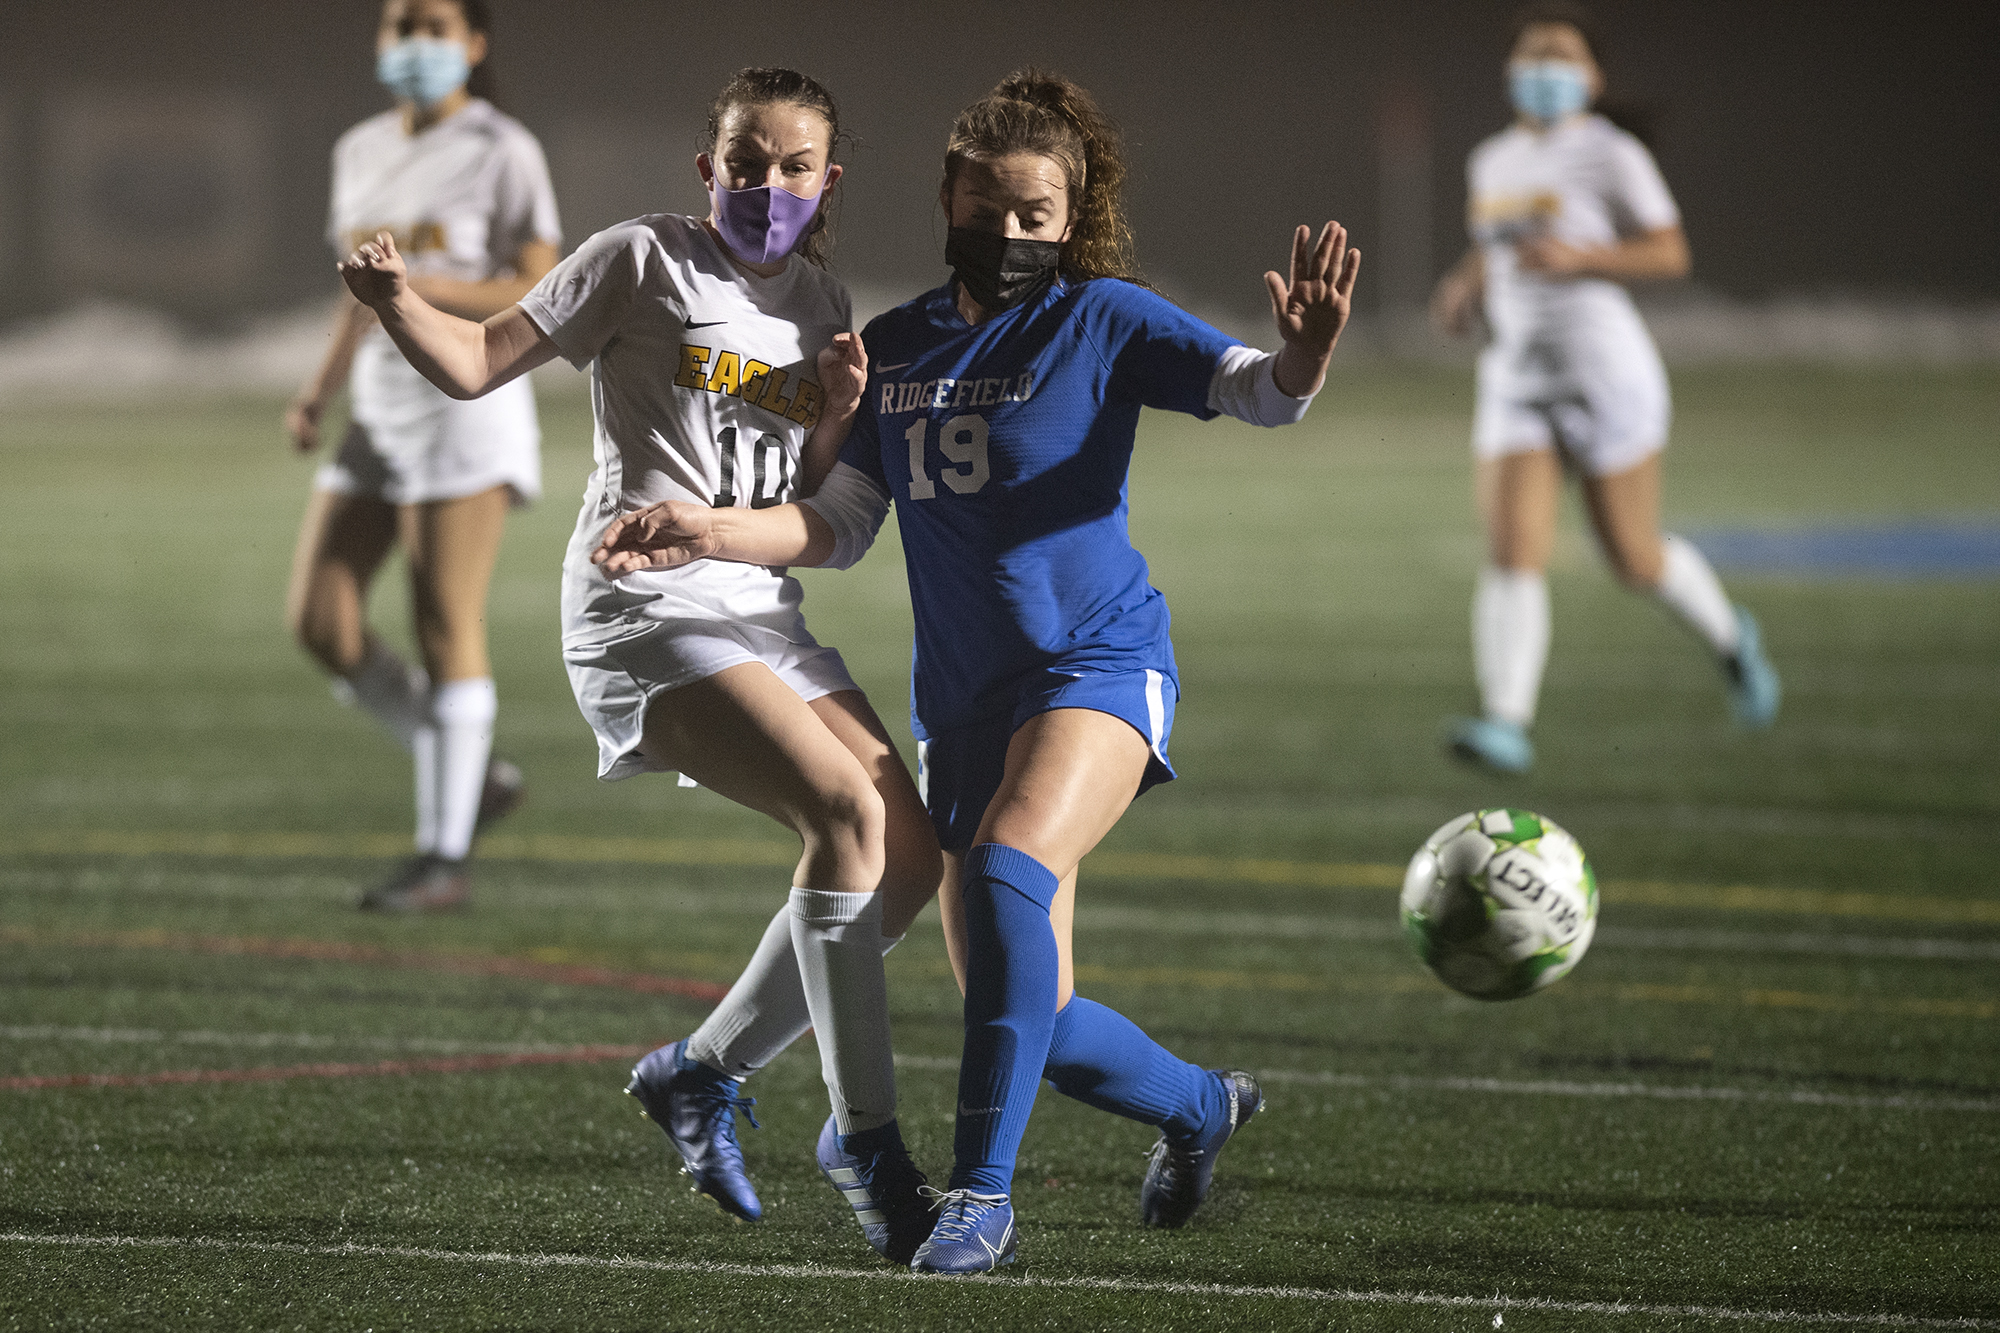 Hudson's Bay's Liza Perkins clears the ball from attacking Ridgefield forward Paytn Barnette in a 2A Greater St. Helens League girls soccer match on Thursday, February 18, at Ridgefield High School. The Spudders won 5-0. (Joshua Hart/The Columbian)